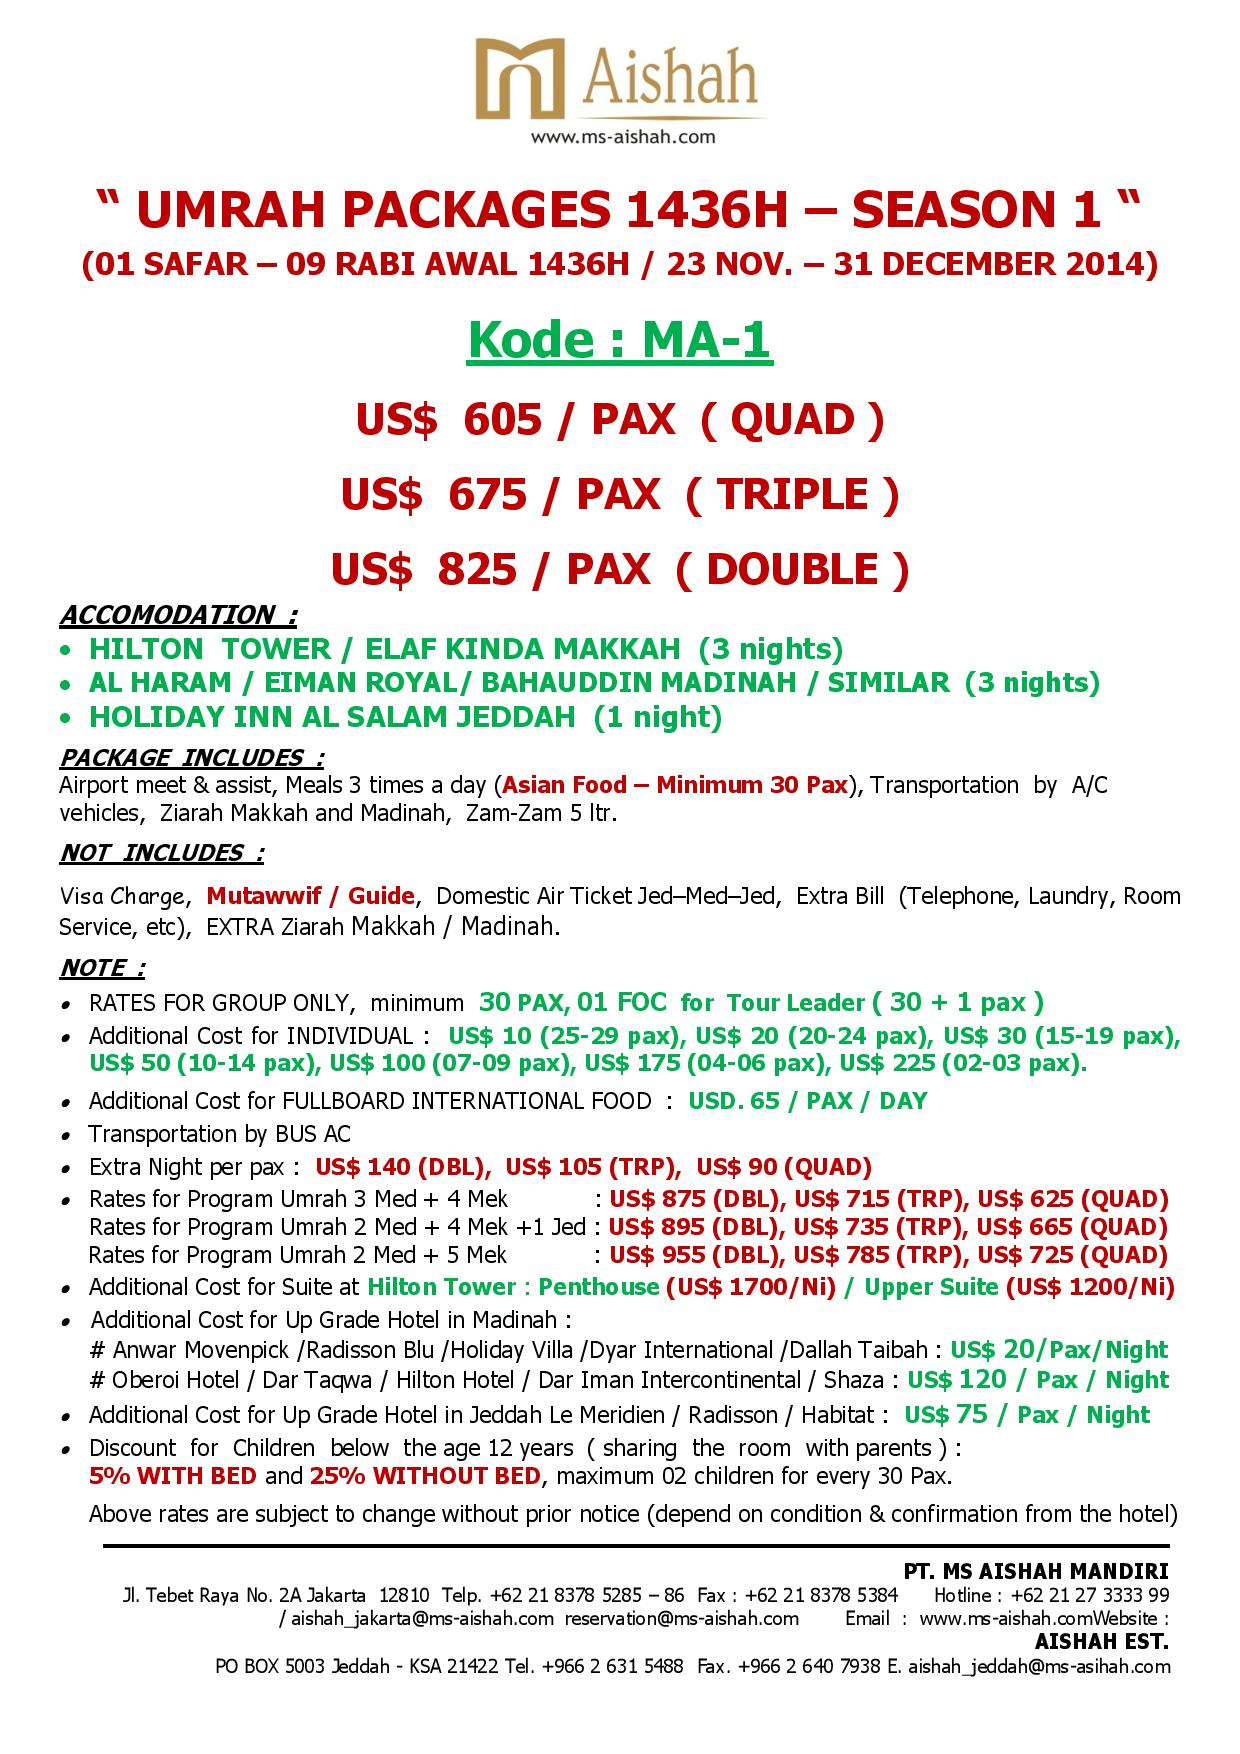 SPECIAL OFFER UMRAH 1436H SEASON 1 - 23 NOVEMBER - 31 DECEMBER 2014 -ma 1